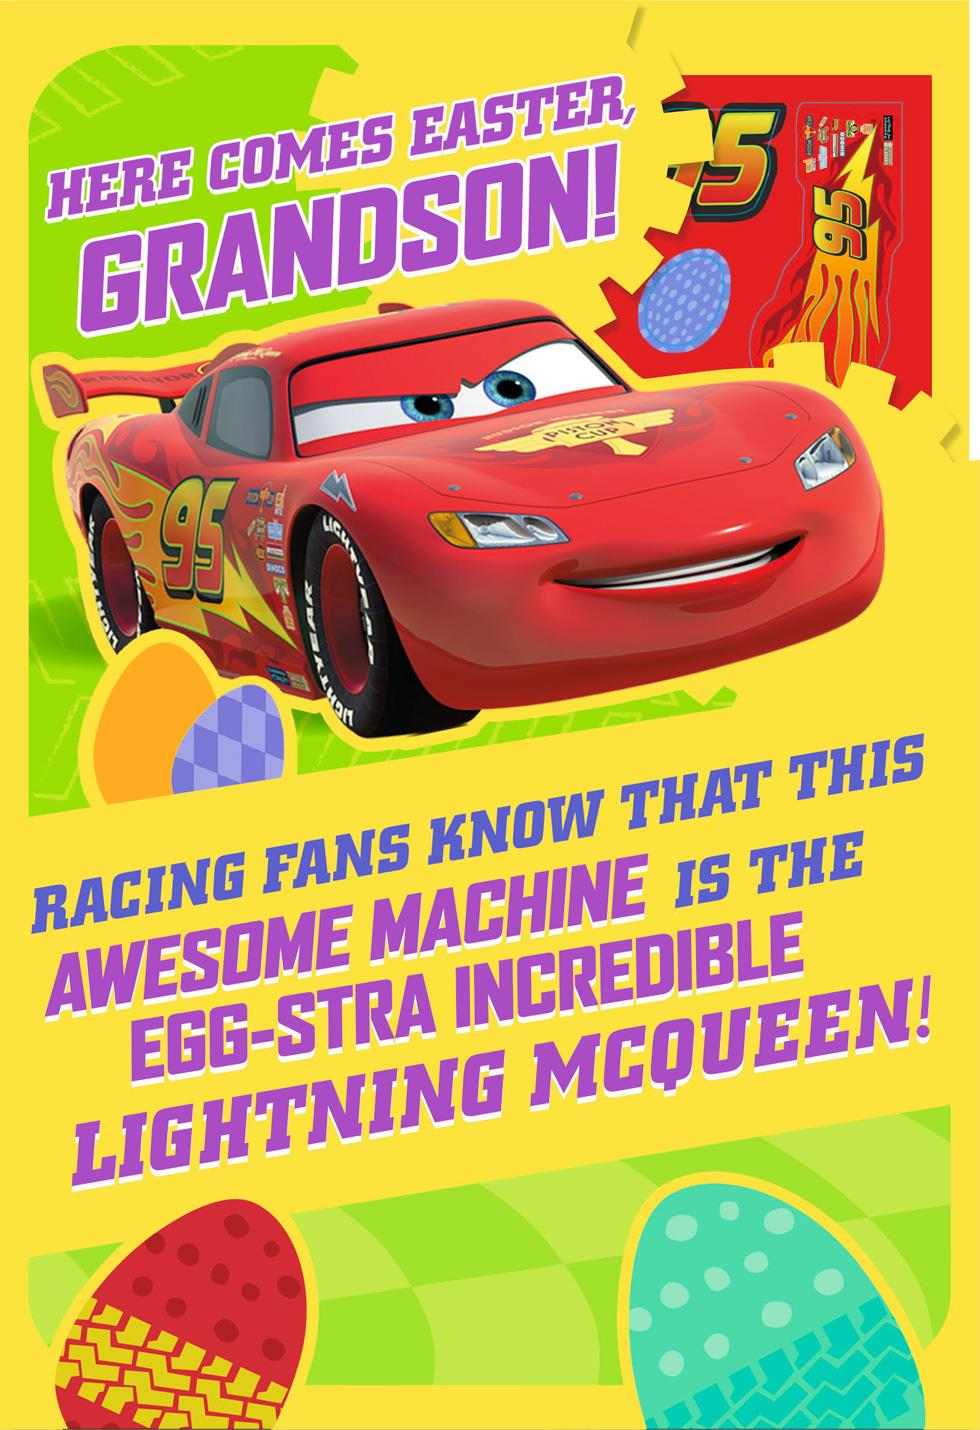 Lightning mcqueen wall stickers india 28 images lighting lightning mcqueen wall stickers india cars lightning mcqueen easter card with stickers for amipublicfo Gallery